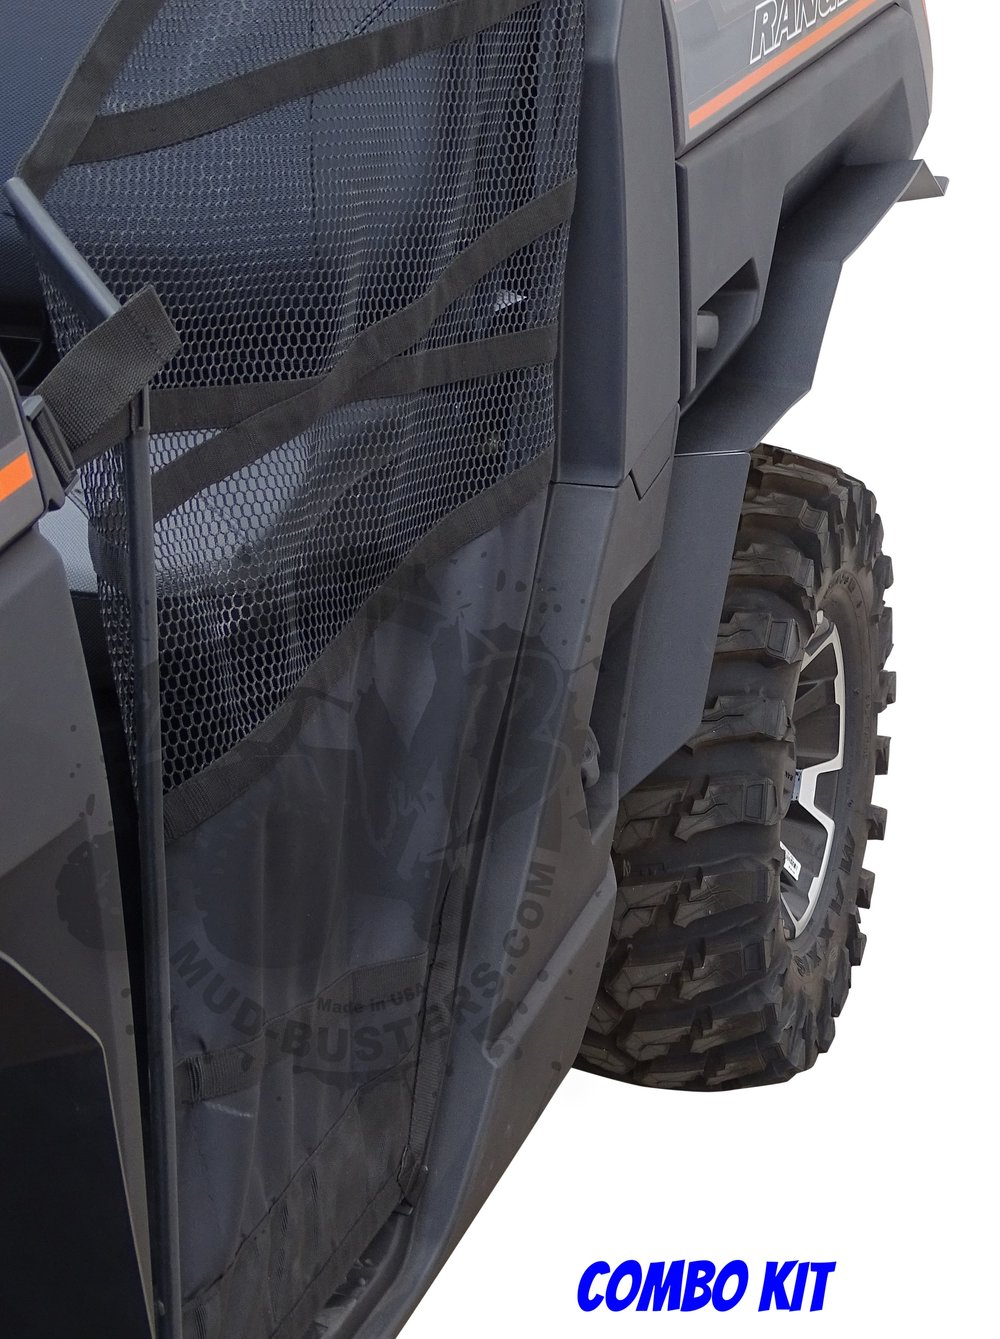 A-Premium UTV Mud Flaps Fender Flares For Polaris RZR XP 1000 RZR XP 4 1000 2014 2015 2016 2017 2018 with Installation Instruction 4-PC Set